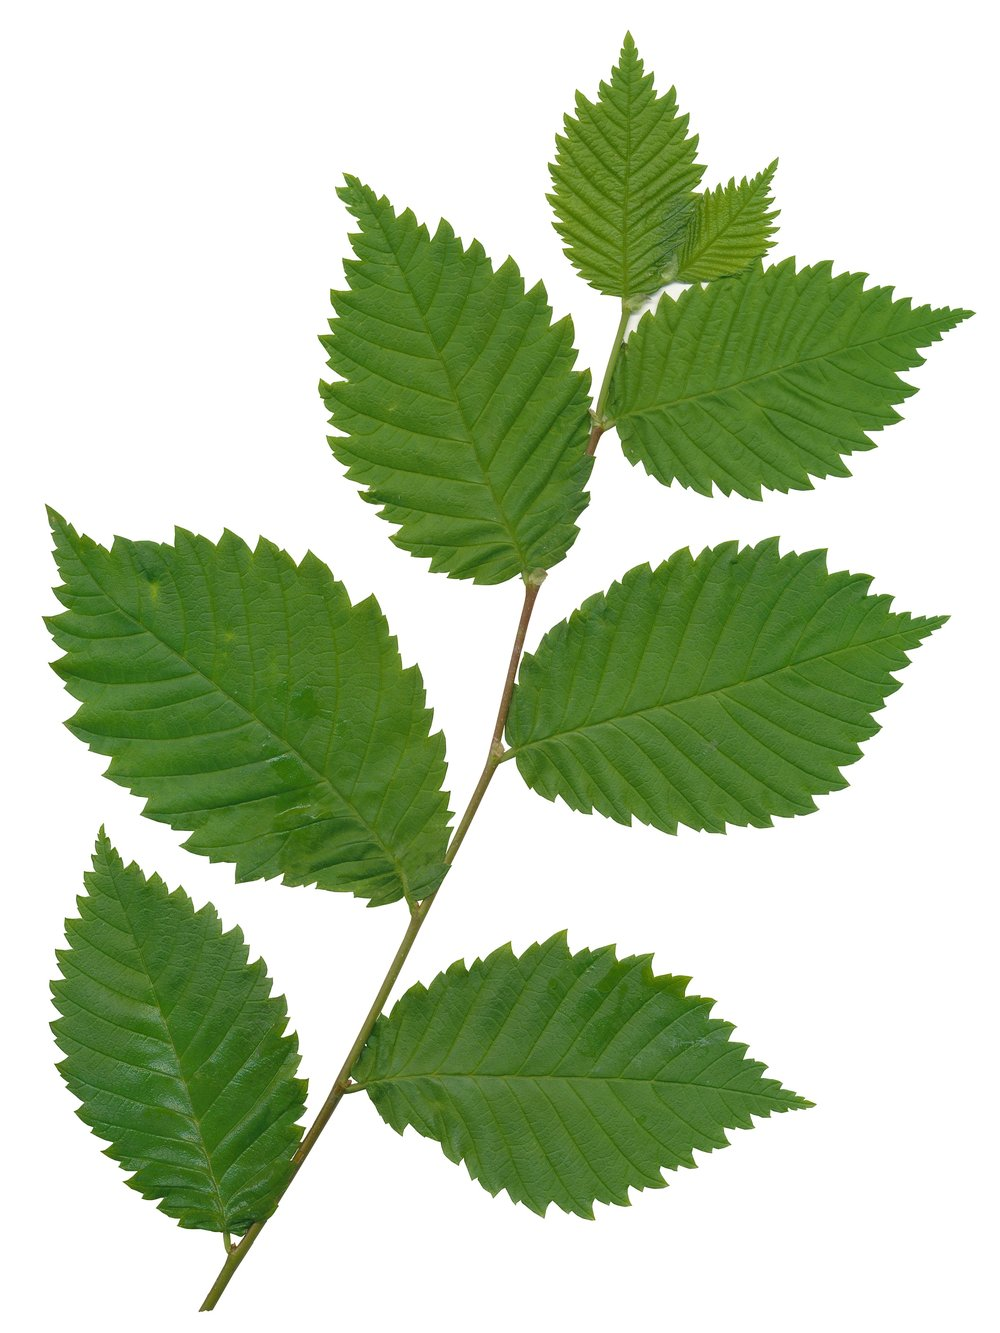 slippery elm tree leaves